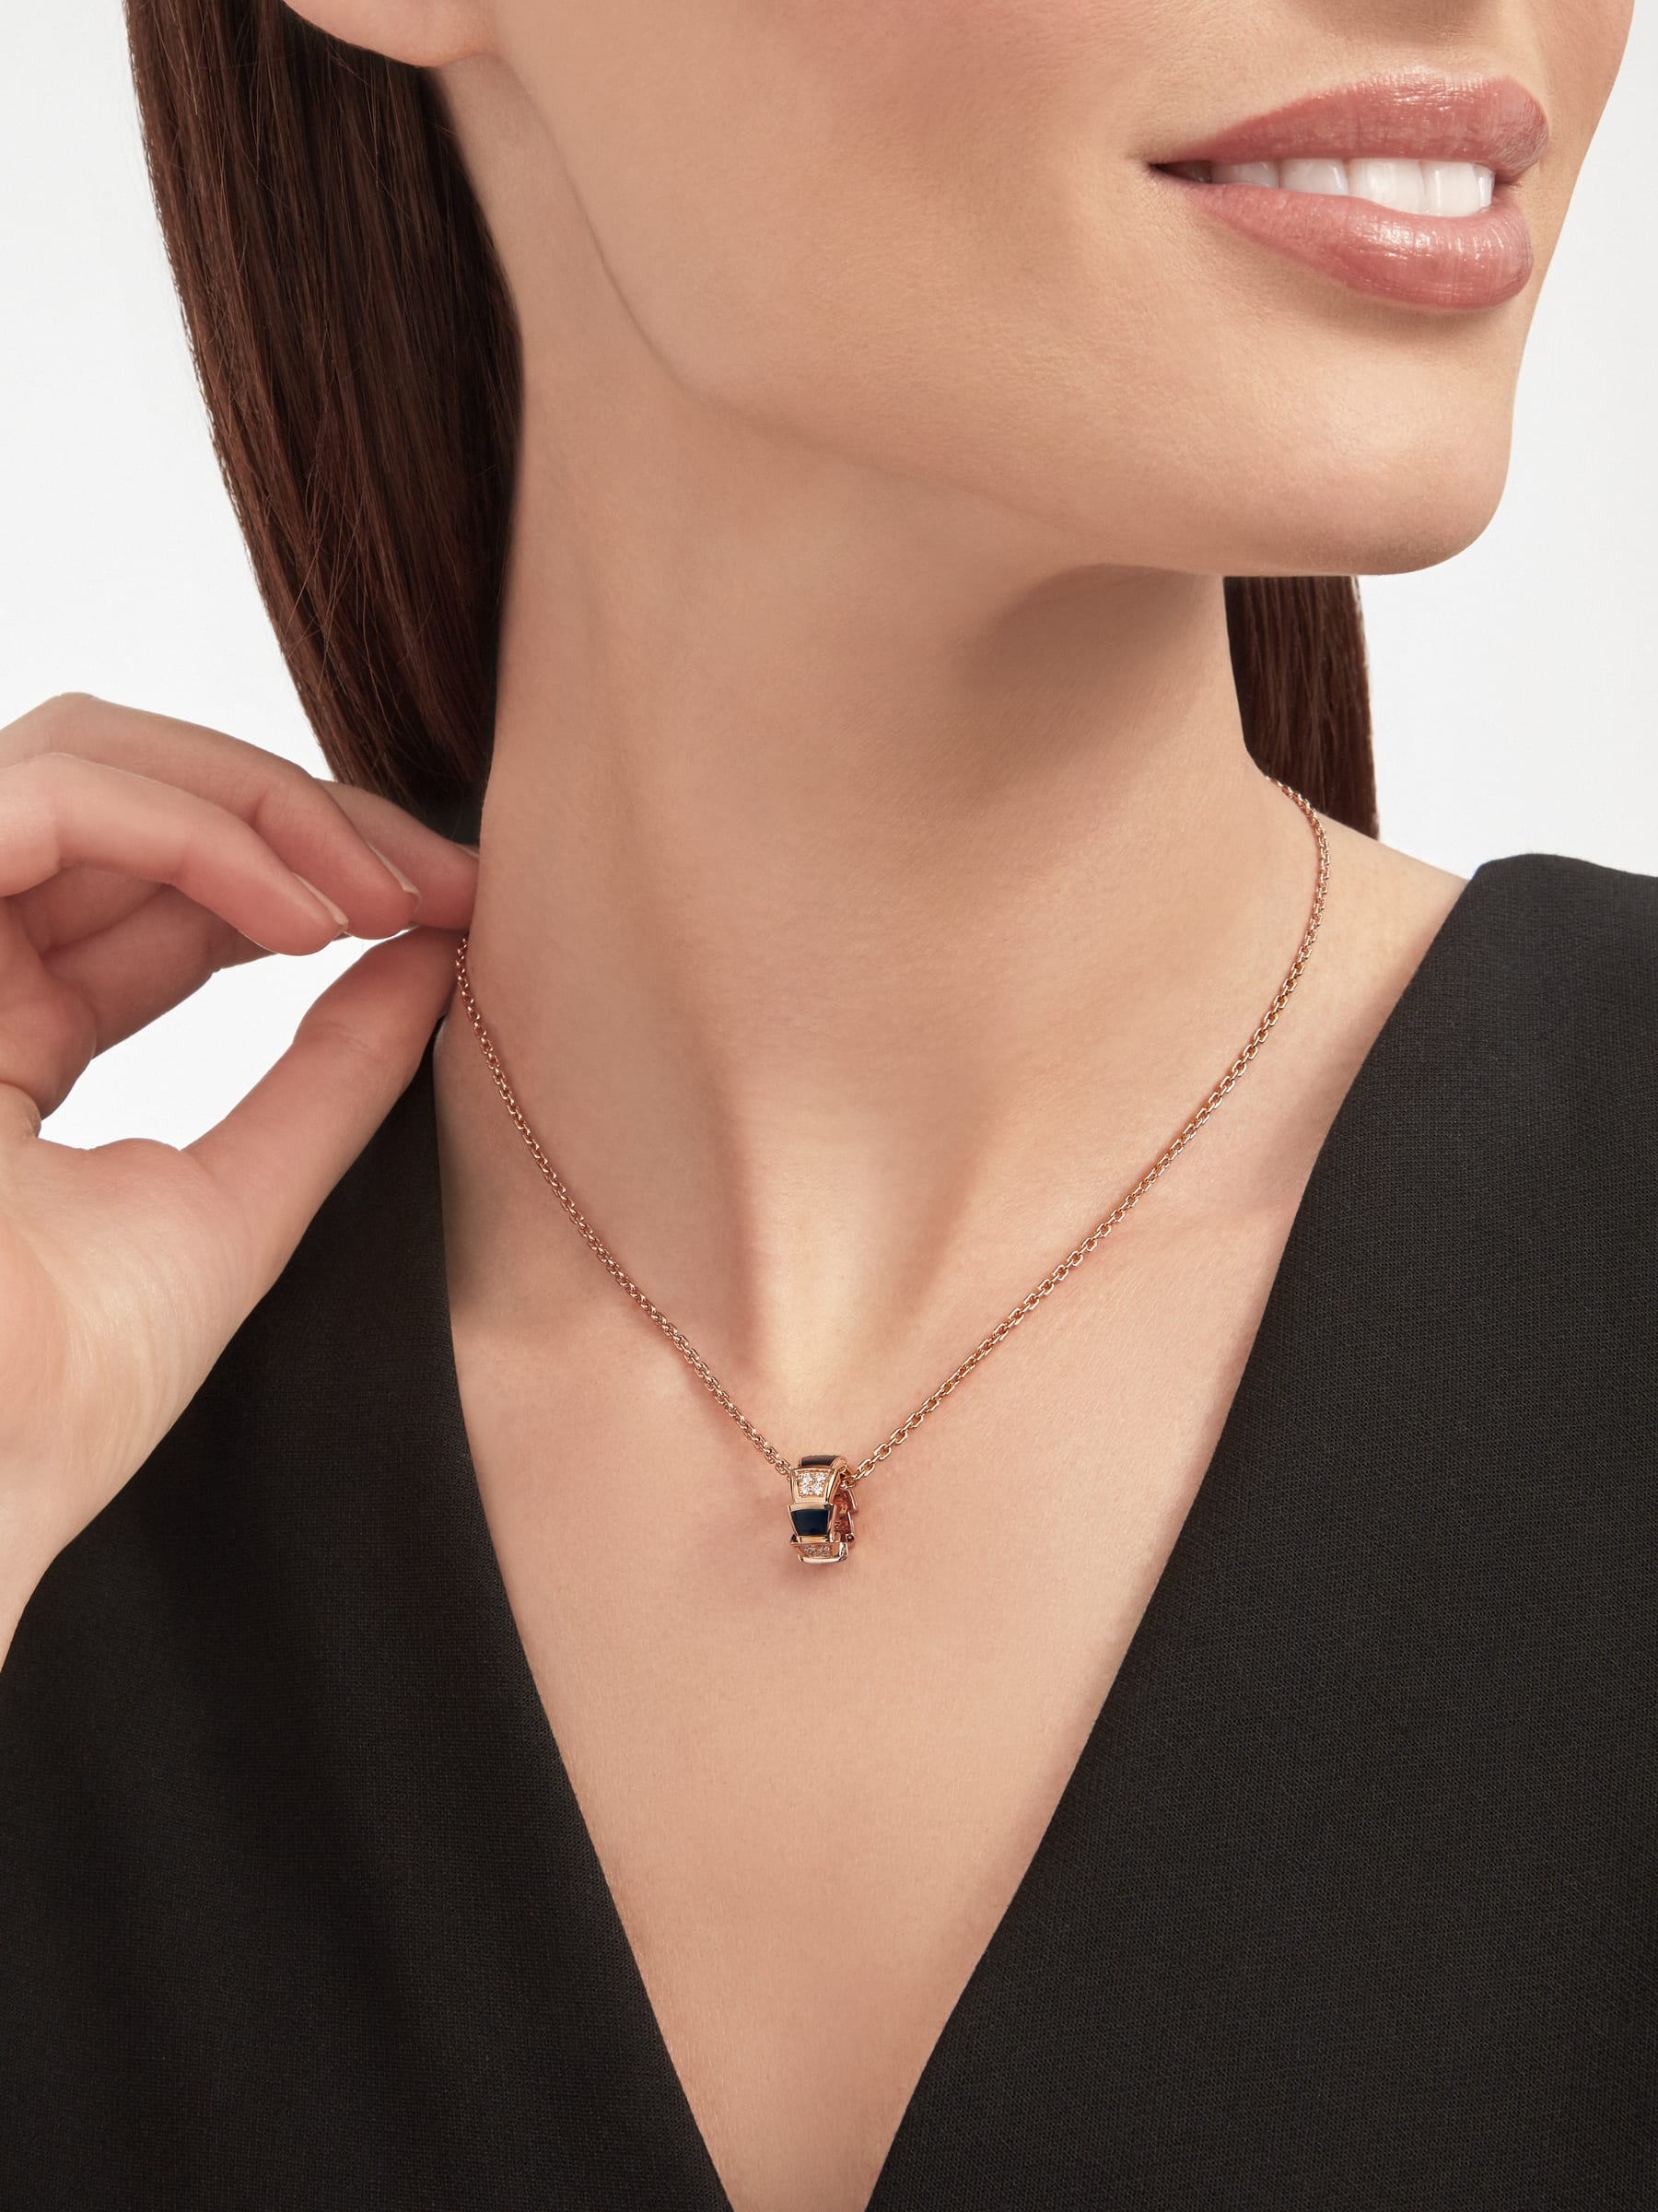 Serpenti Viper 18 kt rose gold necklace set with onyx elements and pavé diamonds (0.21 ct) on the pendant 356554 image 4